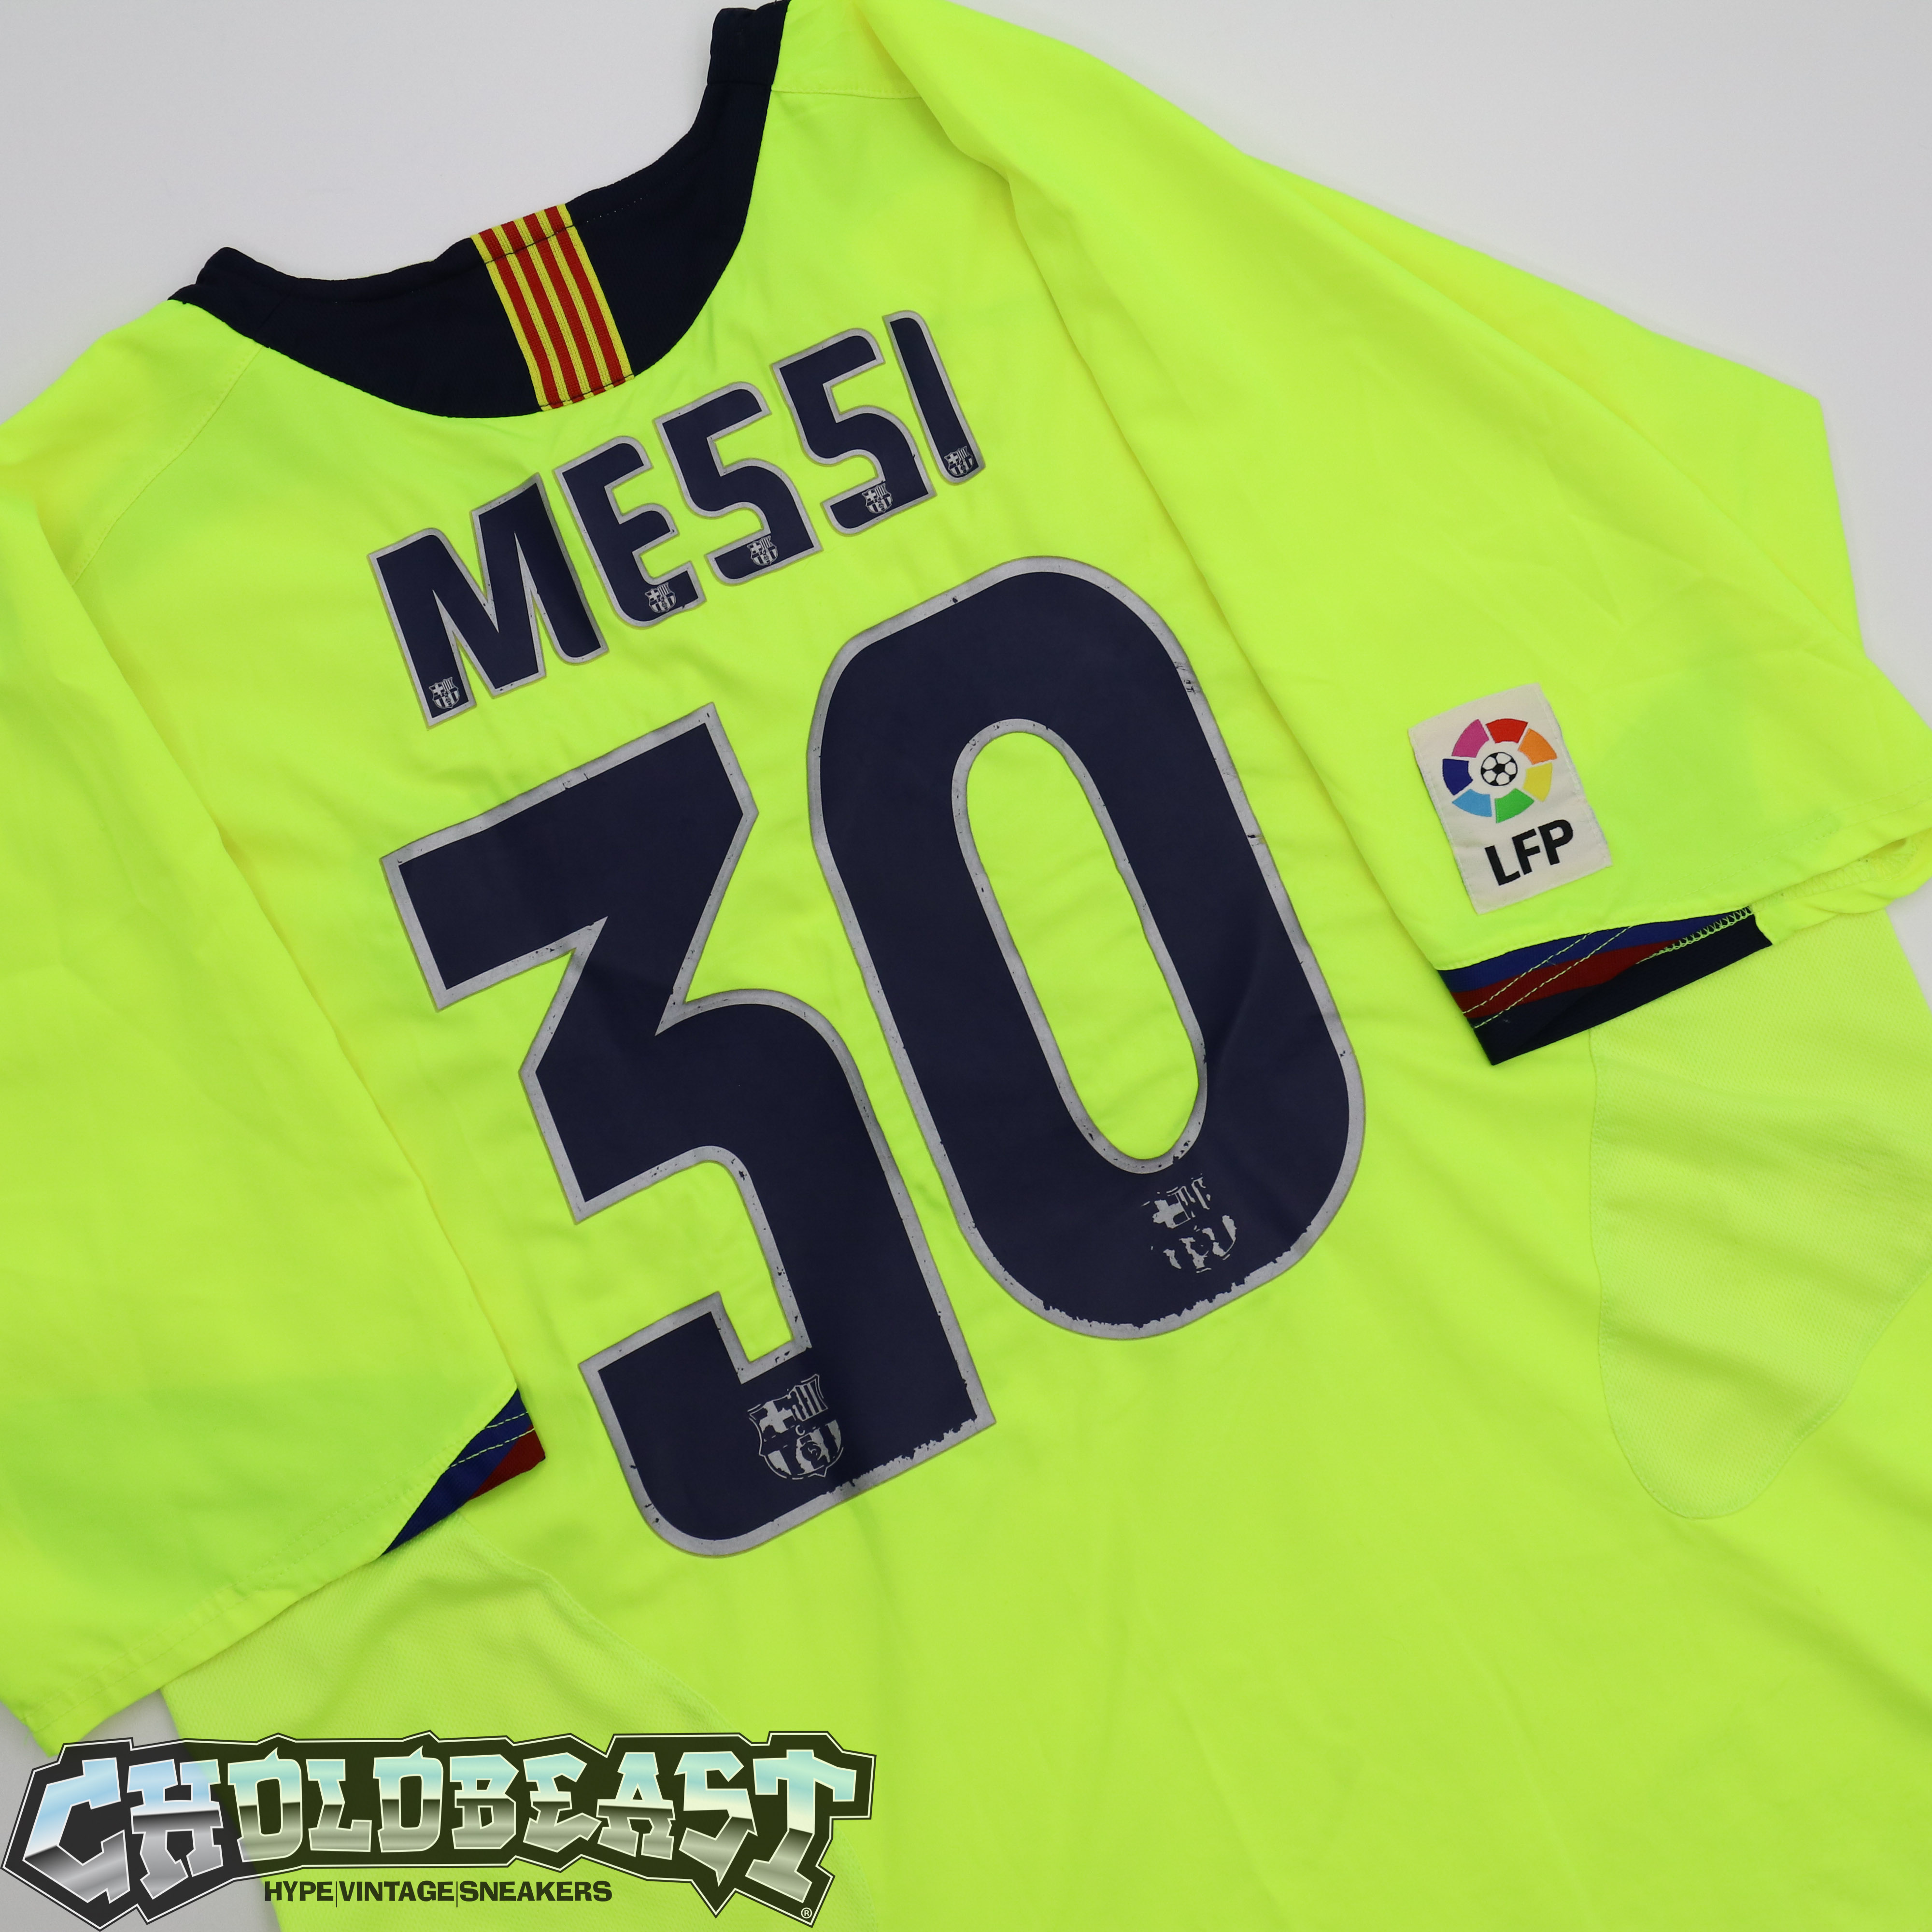 new product a8350 f15a6 VTG 2005 Barcelona Neon Messi #30 amateur rookie soccer futbol jersey